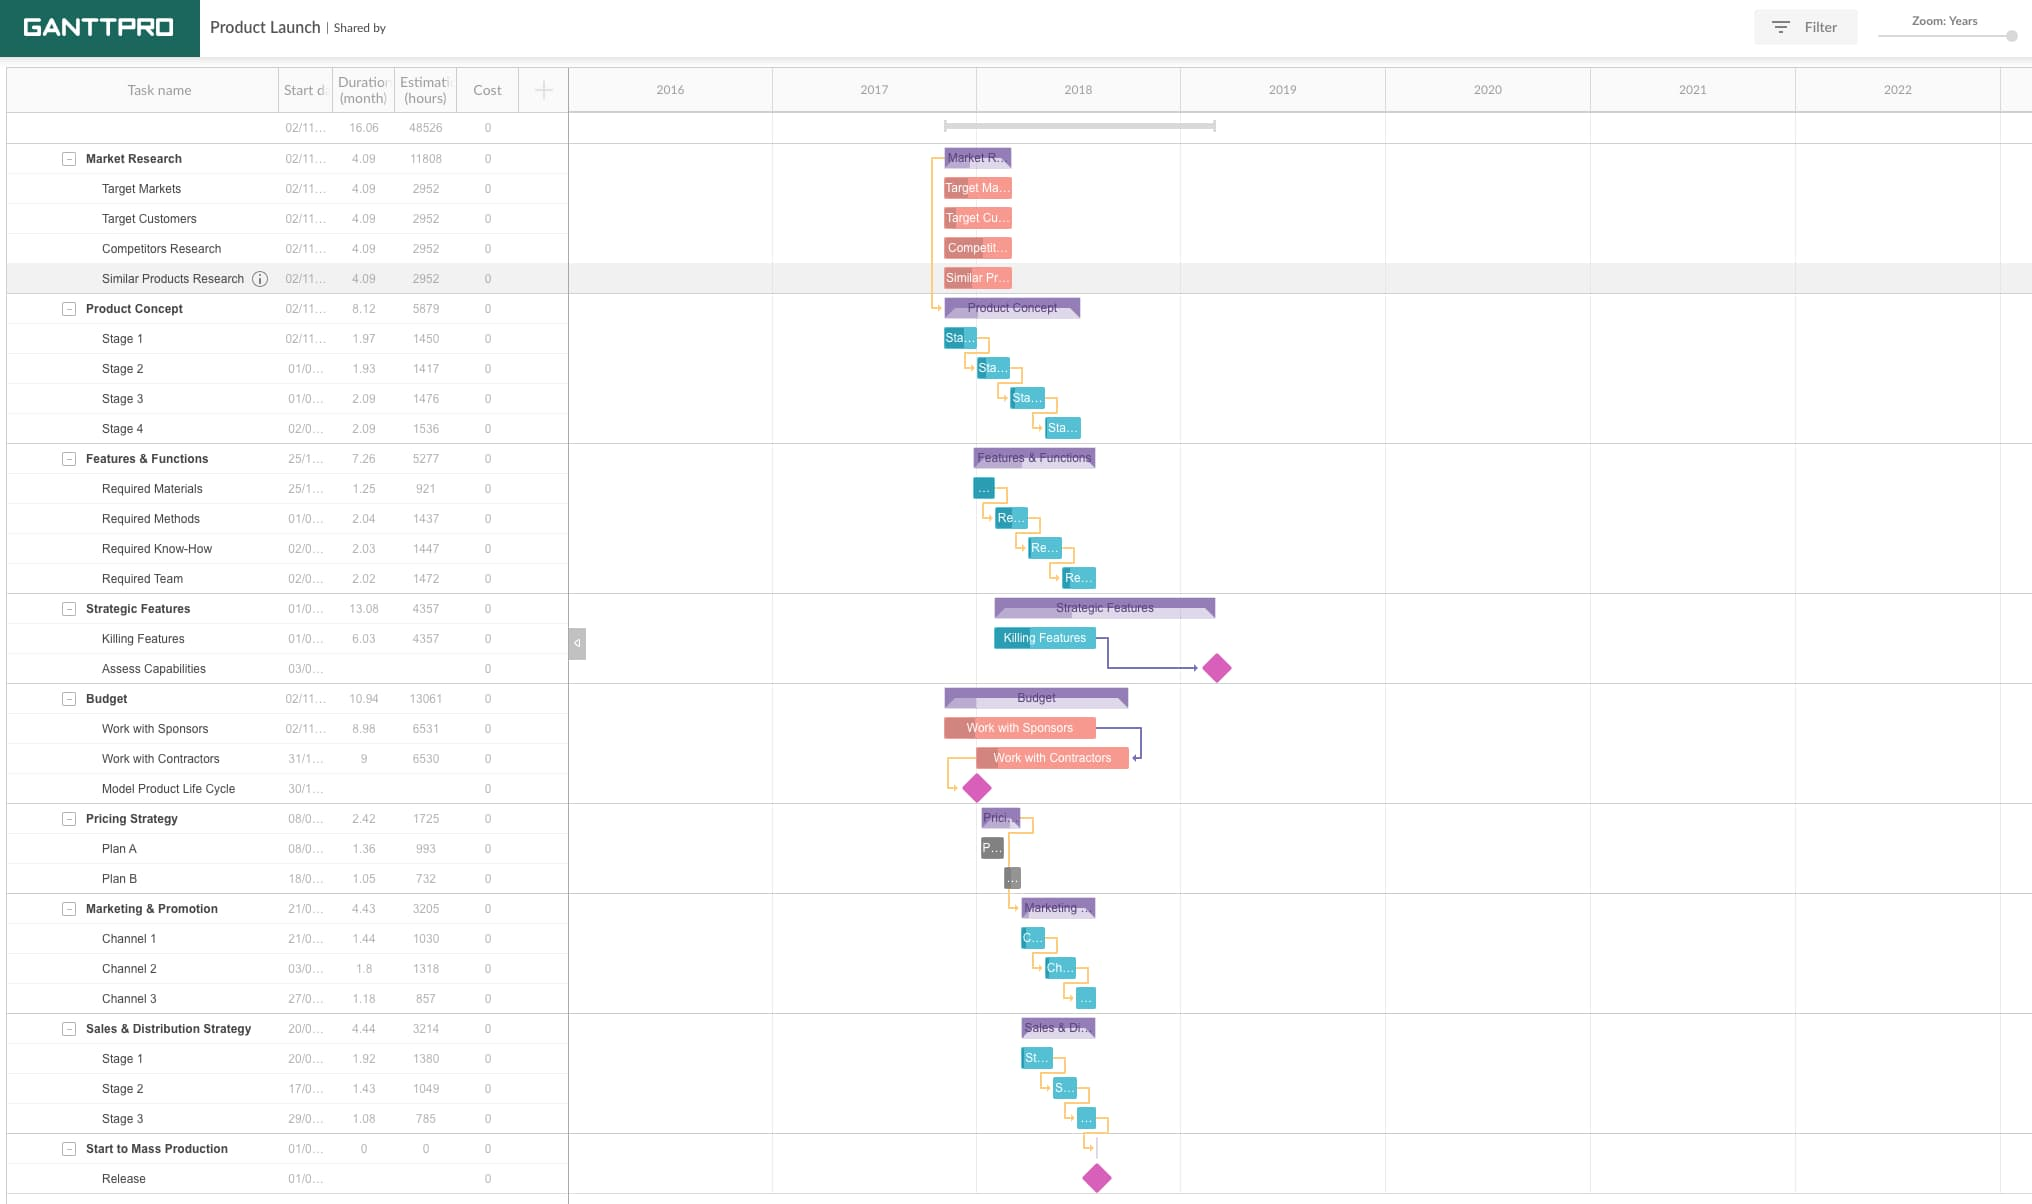 """product-launch-gantt-chart-example """"width ="""" 2032 """"style ="""" width: 2032px; blocco di visualizzazione; margin-left: auto; margin-right: auto; """"srcset ="""" https://blog.hubspot.com/hs-fs/hubfs/product-launch-gantt-chart-example.jpg?width=1016&name=product-launch-gantt-chart- example.jpg 1016w, https://blog.hubspot.com/hs-fs/hubfs/product-launch-gantt-chart-example.jpg?width=2032&name=product-launch-gantt-chart-example.jpg 2032w, https://blog.hubspot.com/hs-fs/hubfs/product-launch-gantt-chart-example.jpg?width=3048&name=product-launch-gantt-chart-example.jpg 3048w, https: // blog .hubspot.com / hs-fs / hubfs / product-launch-gantt-chart-example.jpg? width = 4064 & name = product-launch-gantt-chart-example.jpg 4064w, https://blog.hubspot.com/ hs-fs / hubfs / product-launch-gantt-chart-example.jpg? width = 5080 & name = product-launch-gantt-chart-example.jpg 5080w, https://blog.hubspot.com/hs-fs/hubfs /product-launch-gantt-chart-example.jpg?width=6096&name=product-launch-gantt-chart-example.jpg 6096w """"sizes ="""" (larghezza massima: 2032 px) 100vw, 2032 px"""